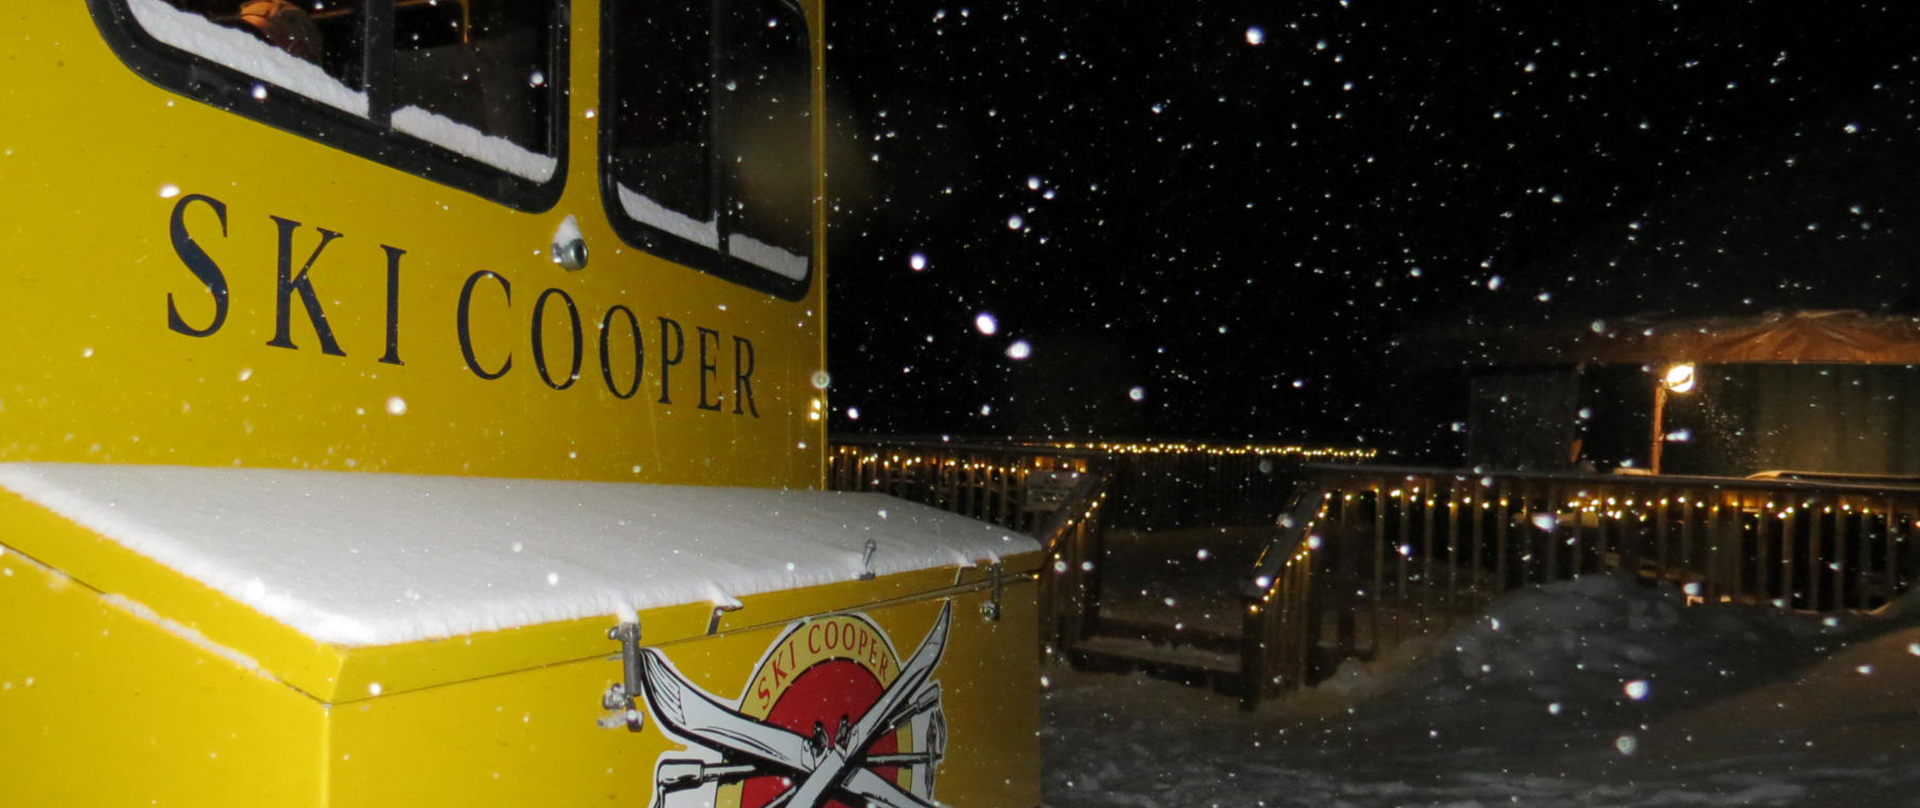 snowcat parked by the yurt